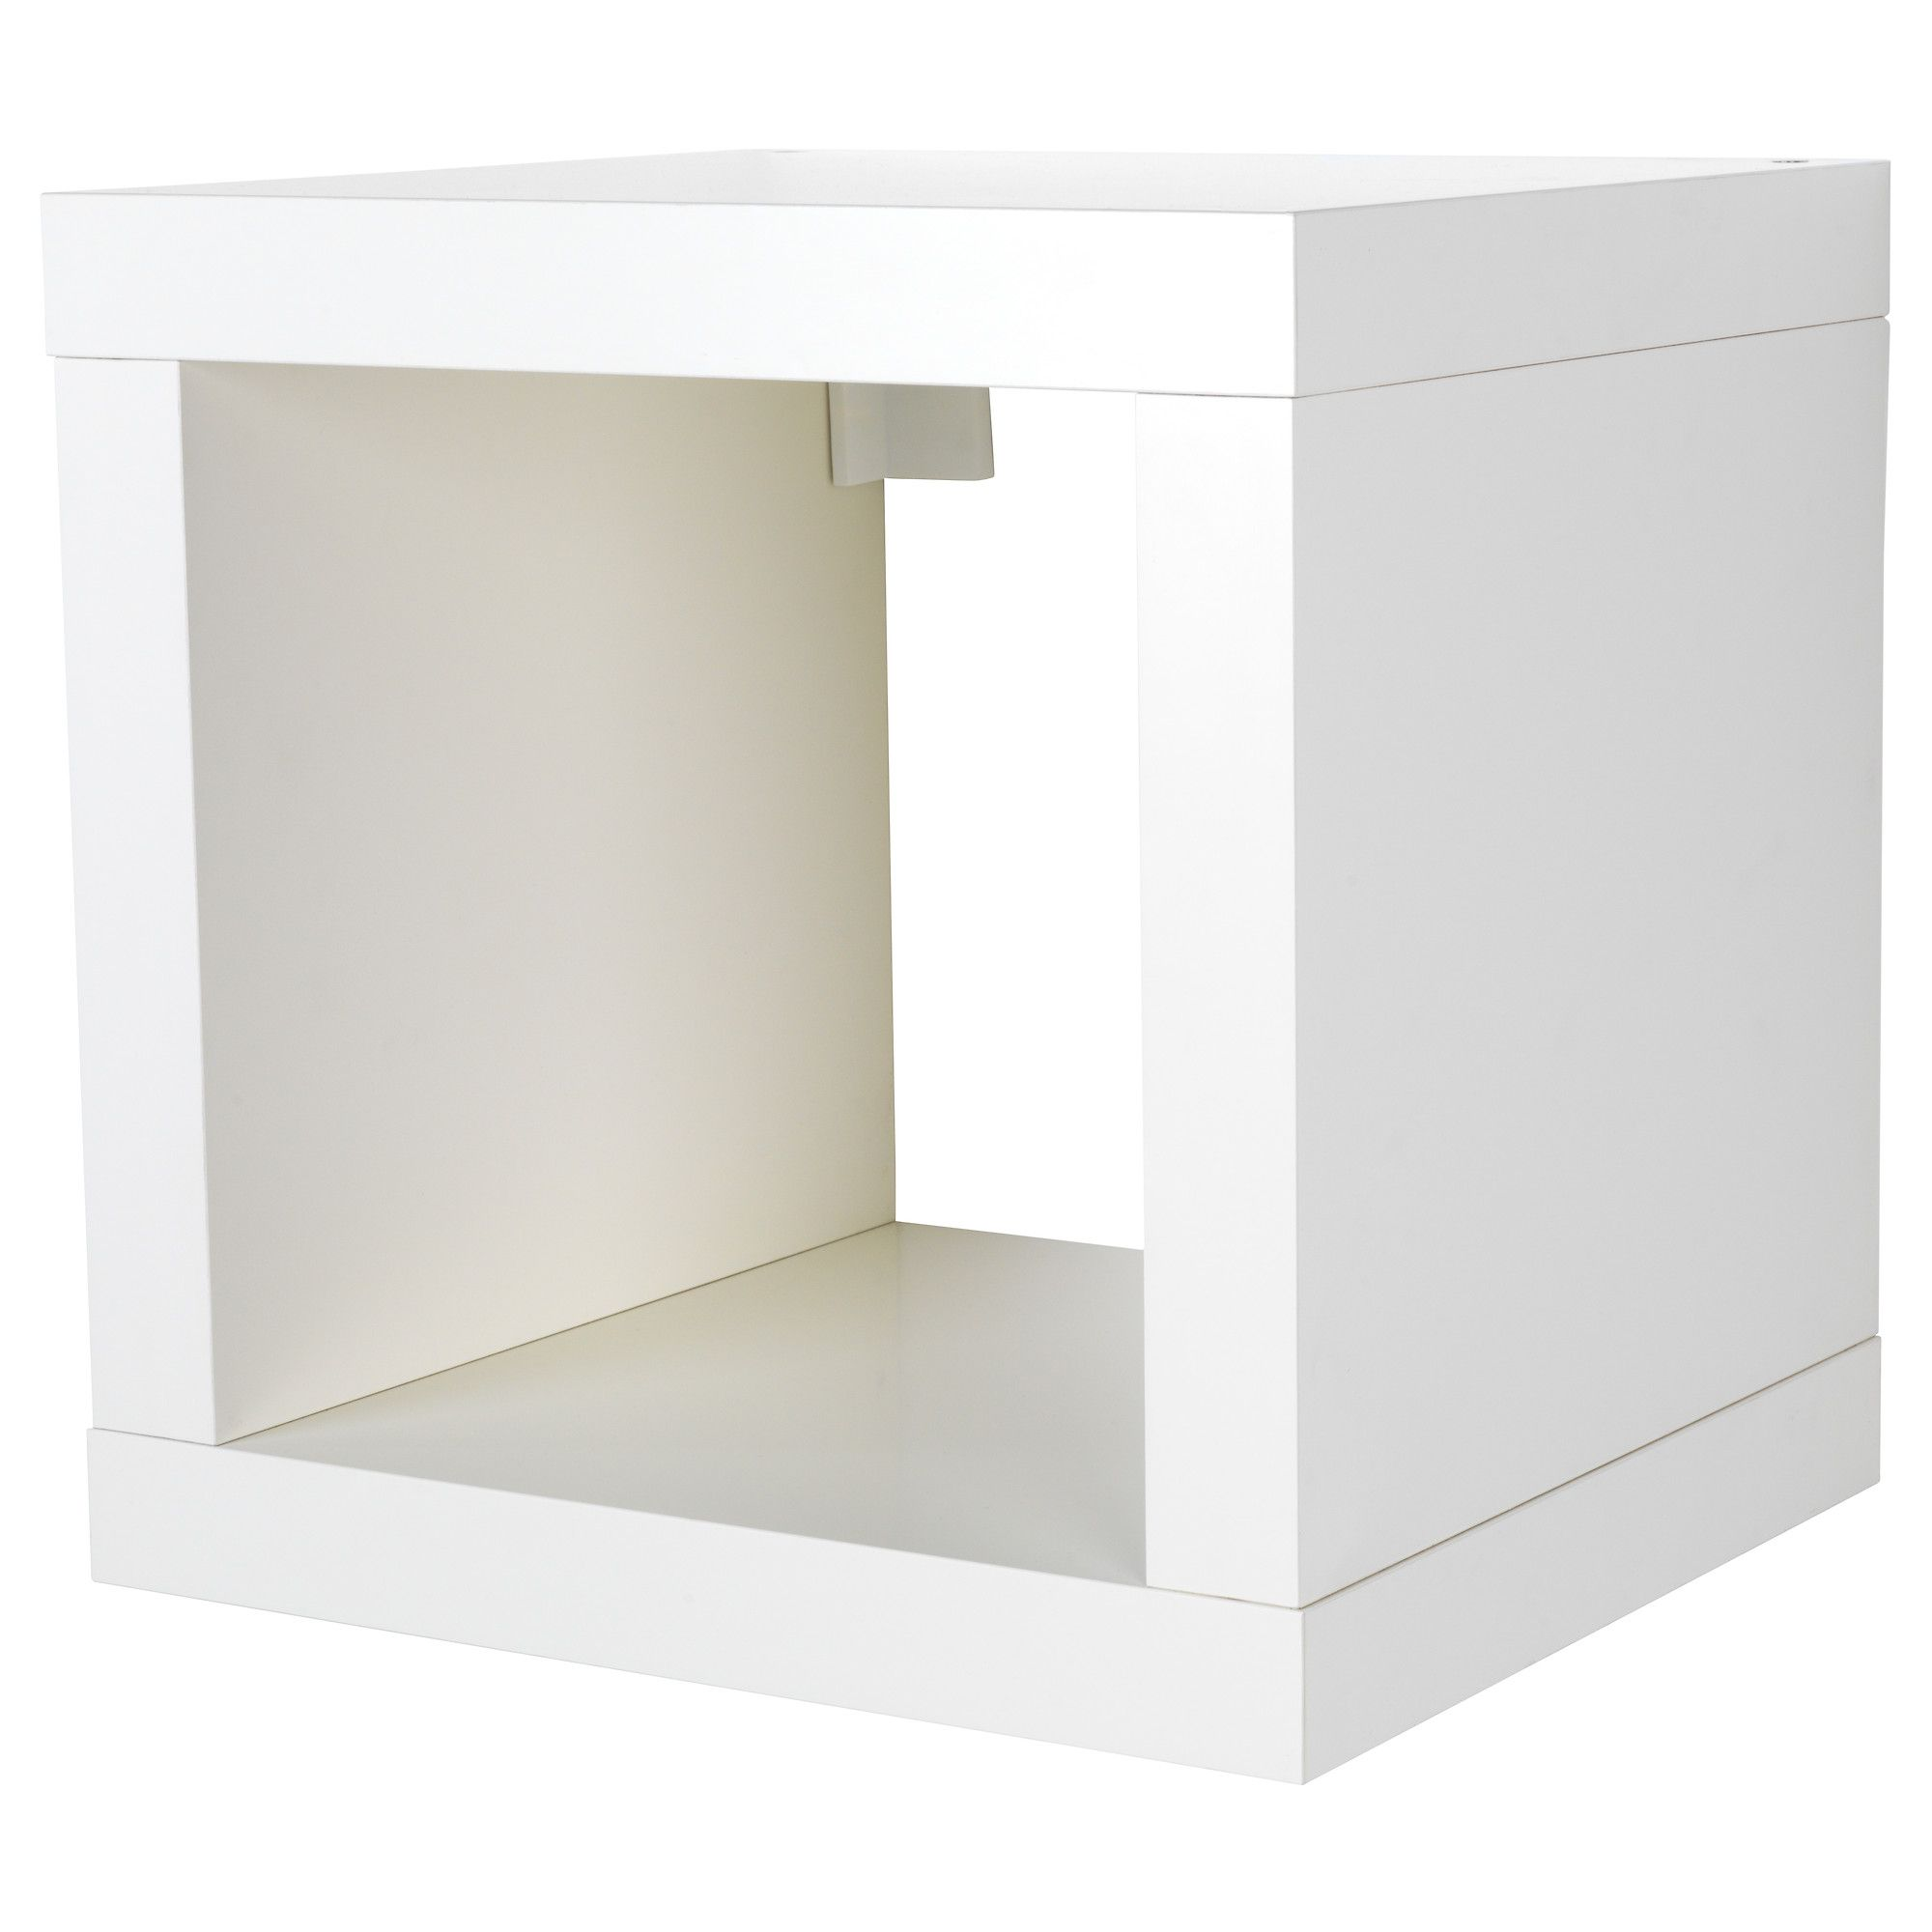 Büromöbel weiss ikea  12,99 44x44 cm EXPEDIT Regal - weiß - IKEA | Kitchen | Pinterest ...